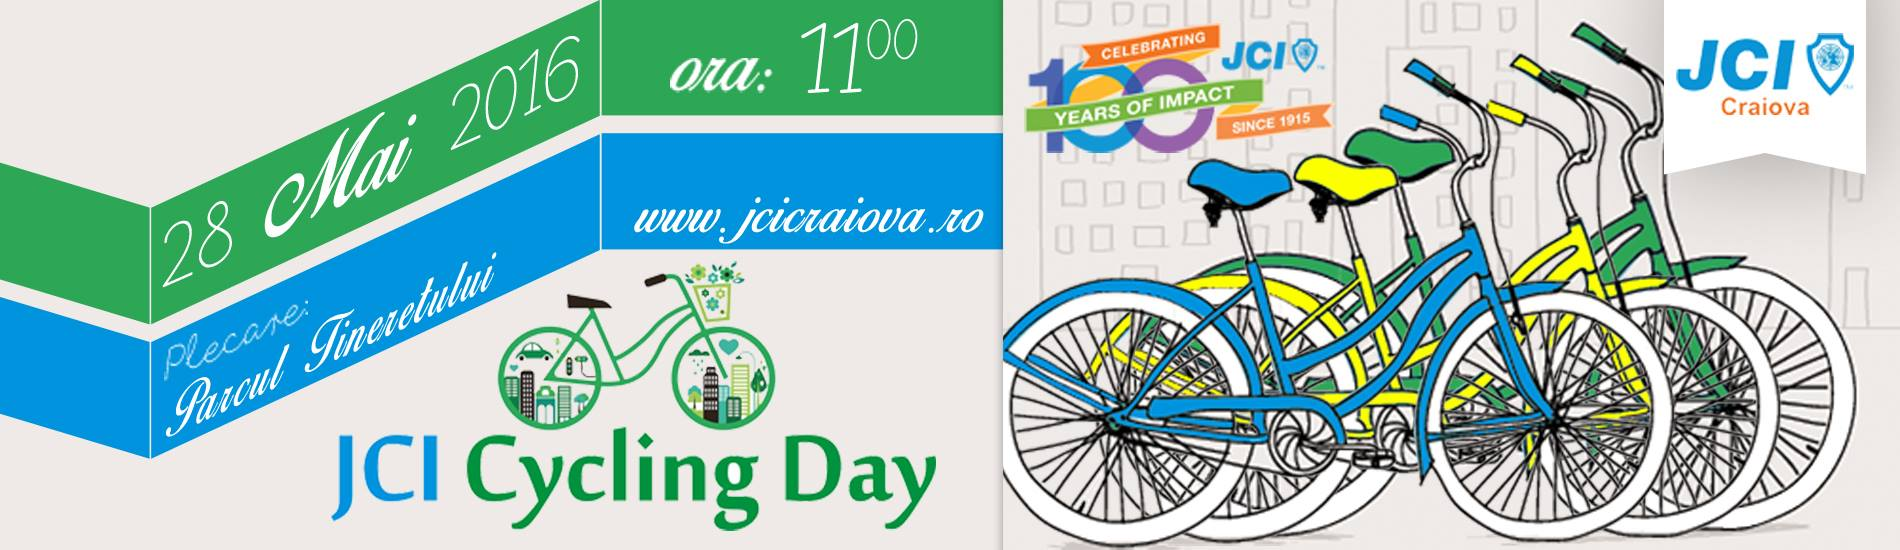 JCI-Cycling-Day-mai20161